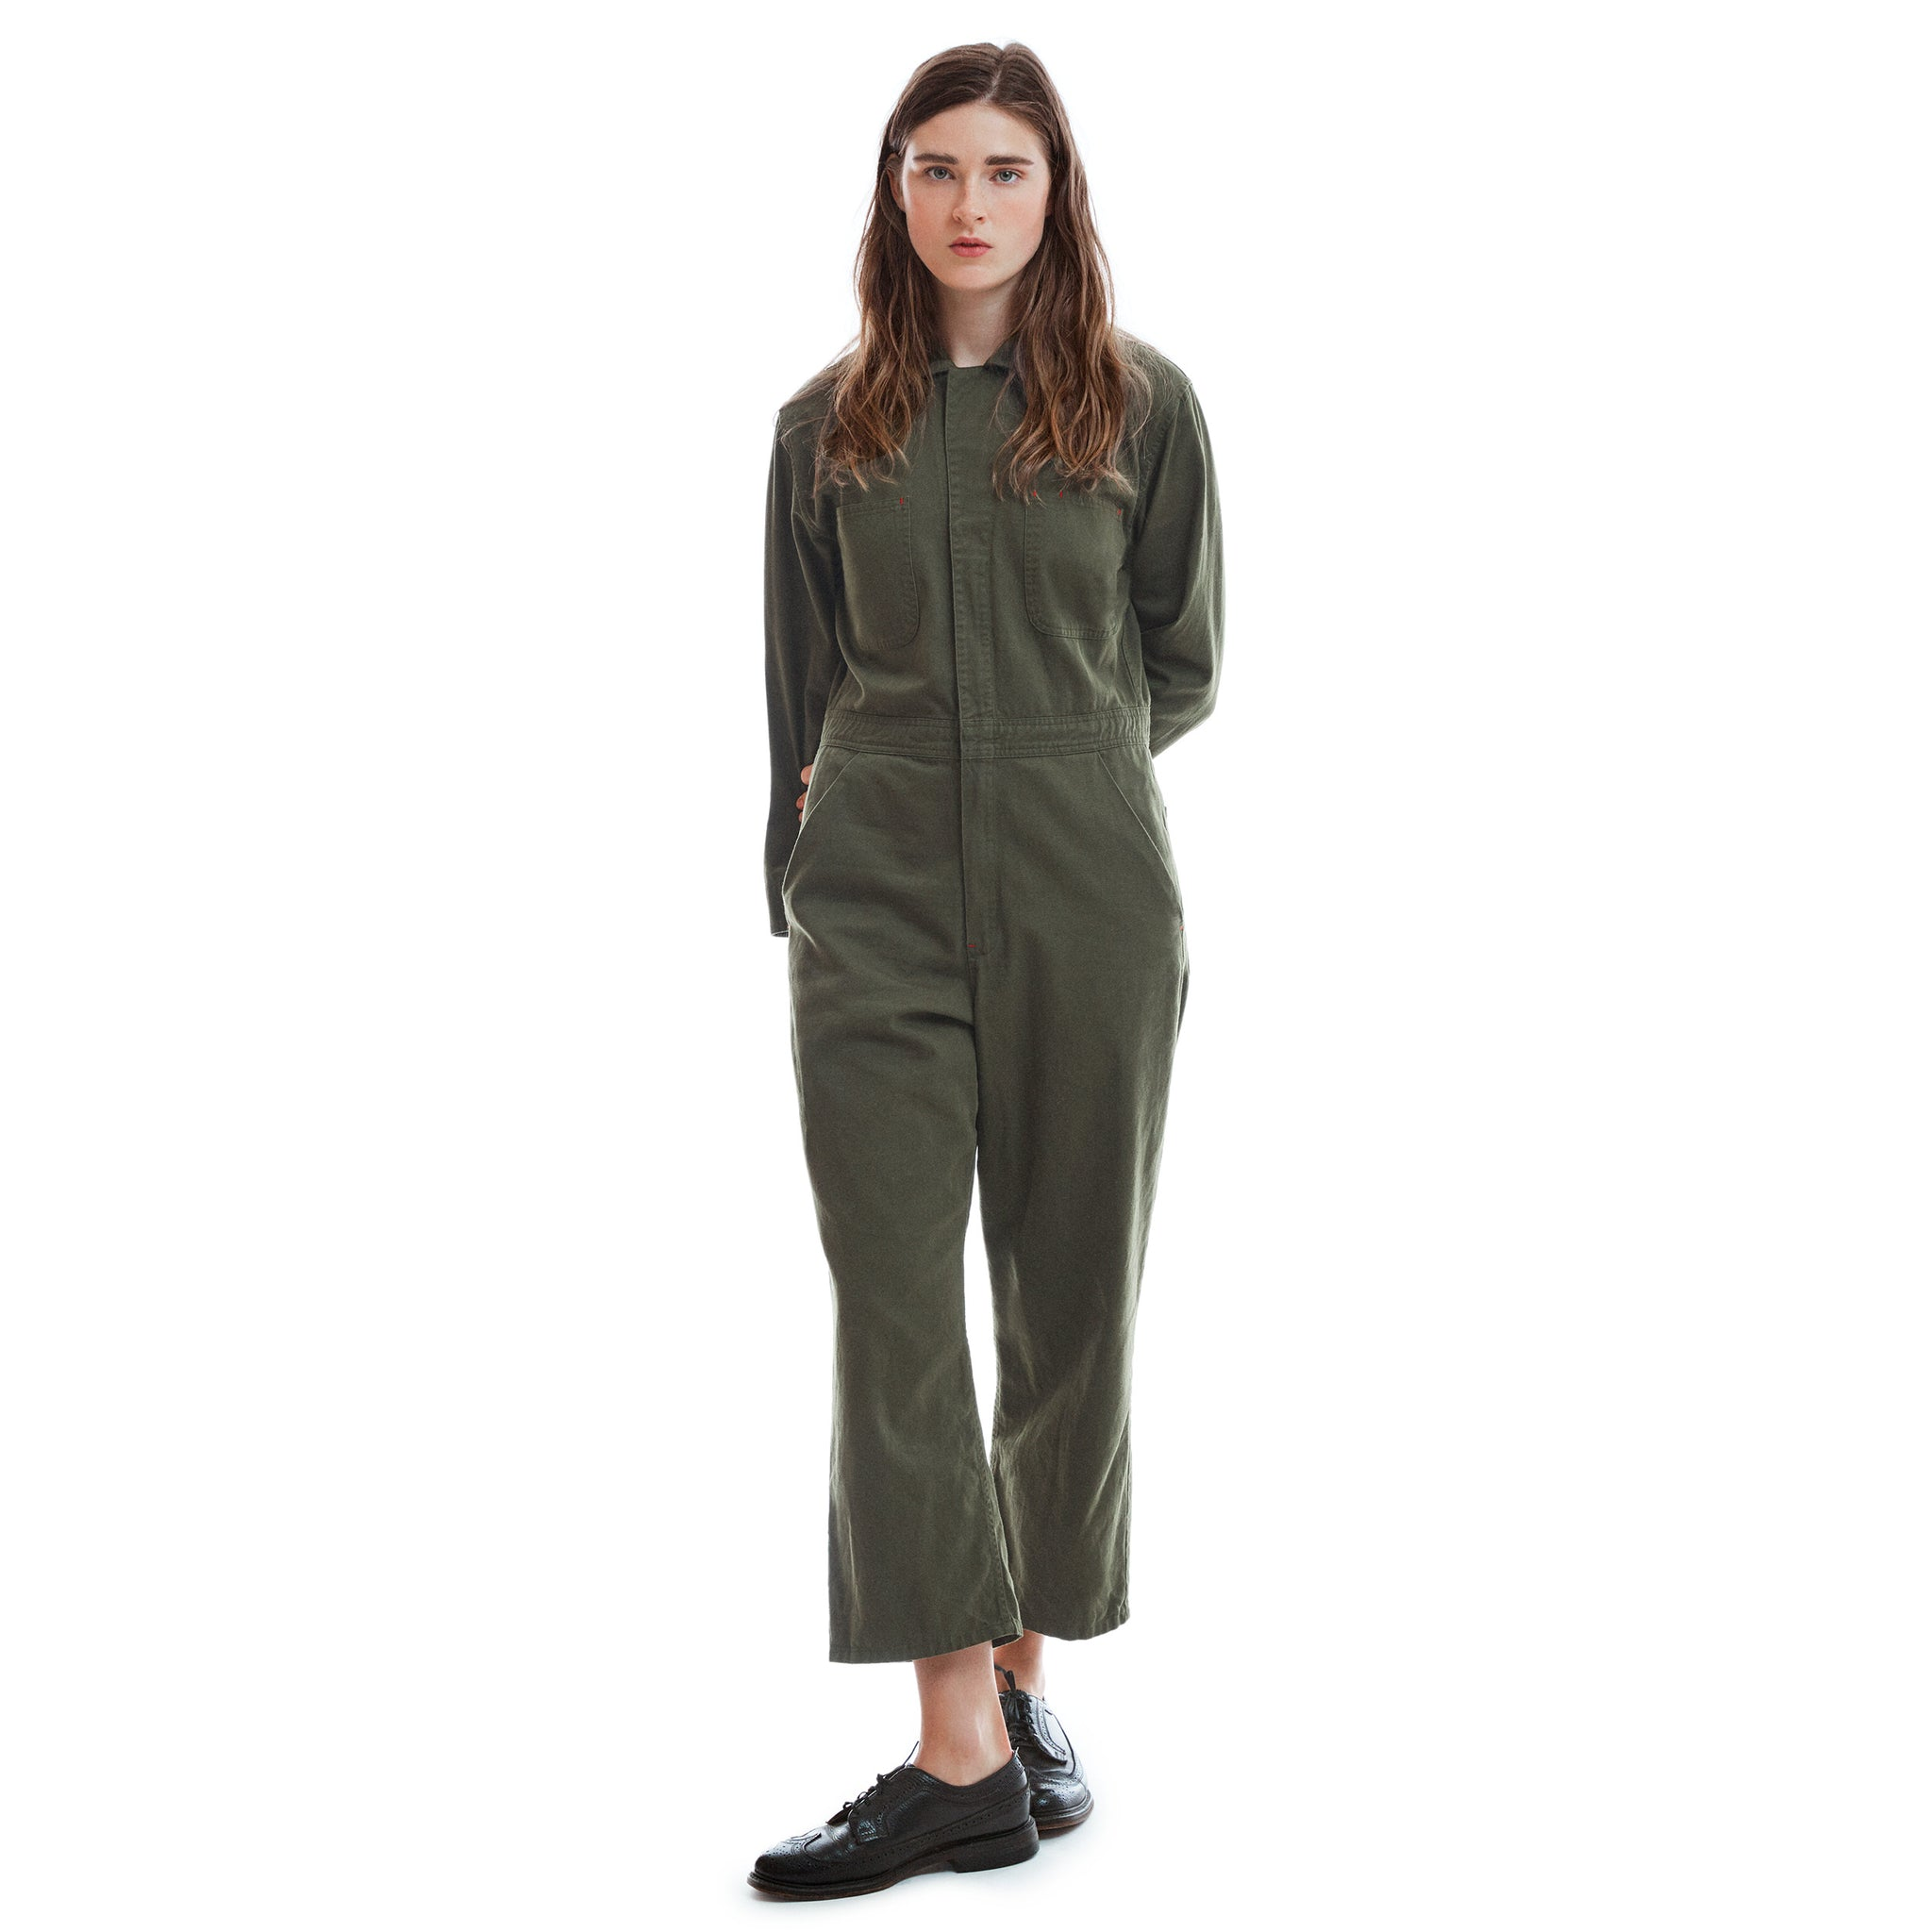 Lincoln jumpsuit